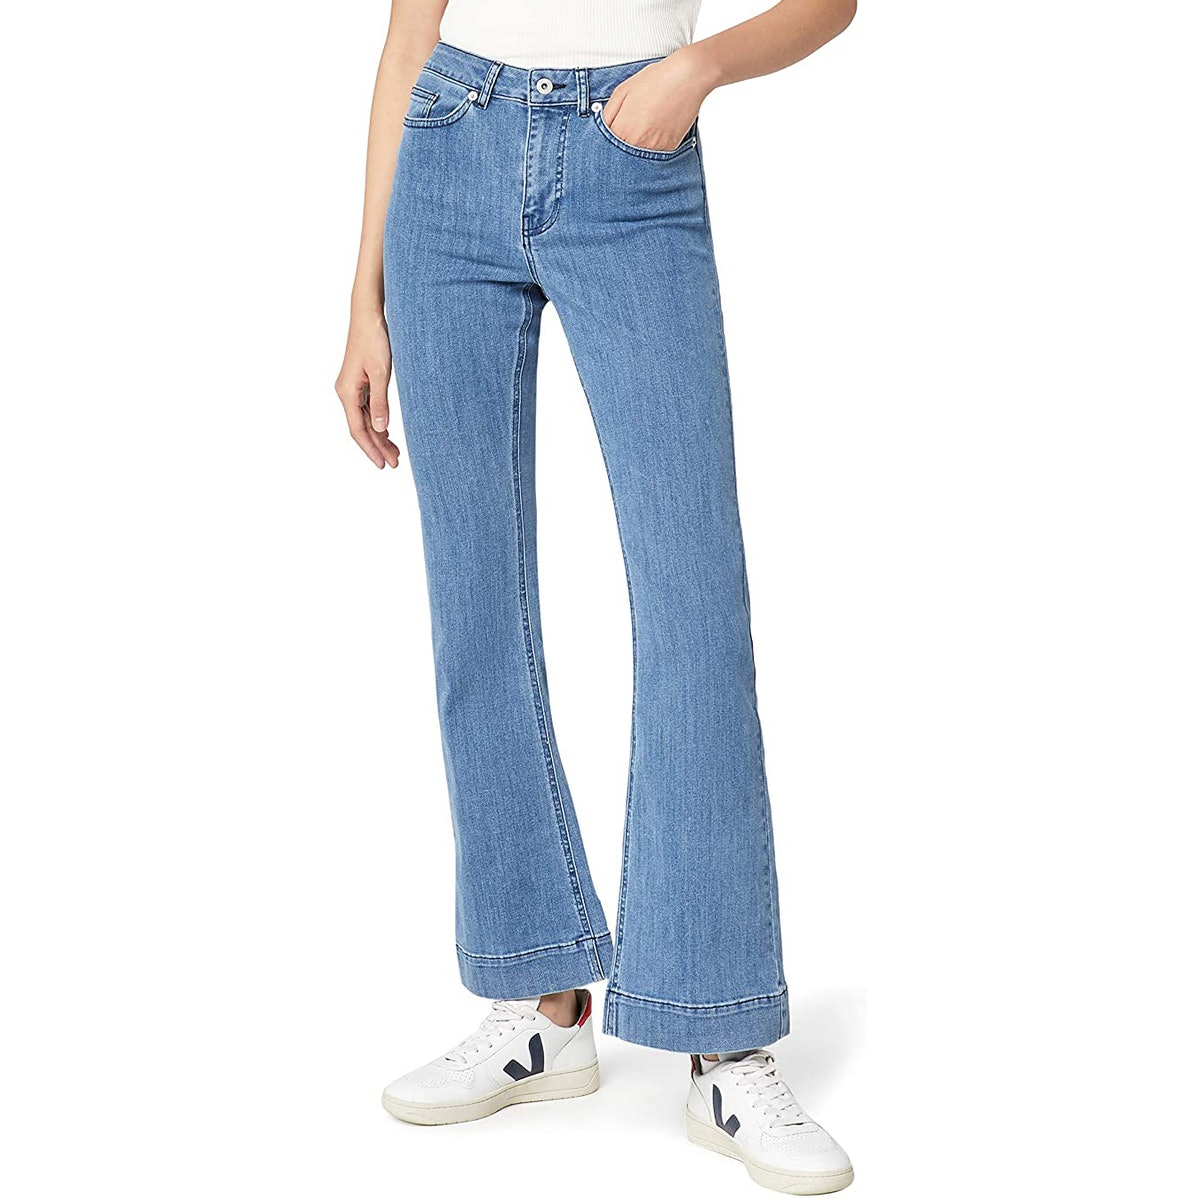 find. High-Rise Flare Jeans